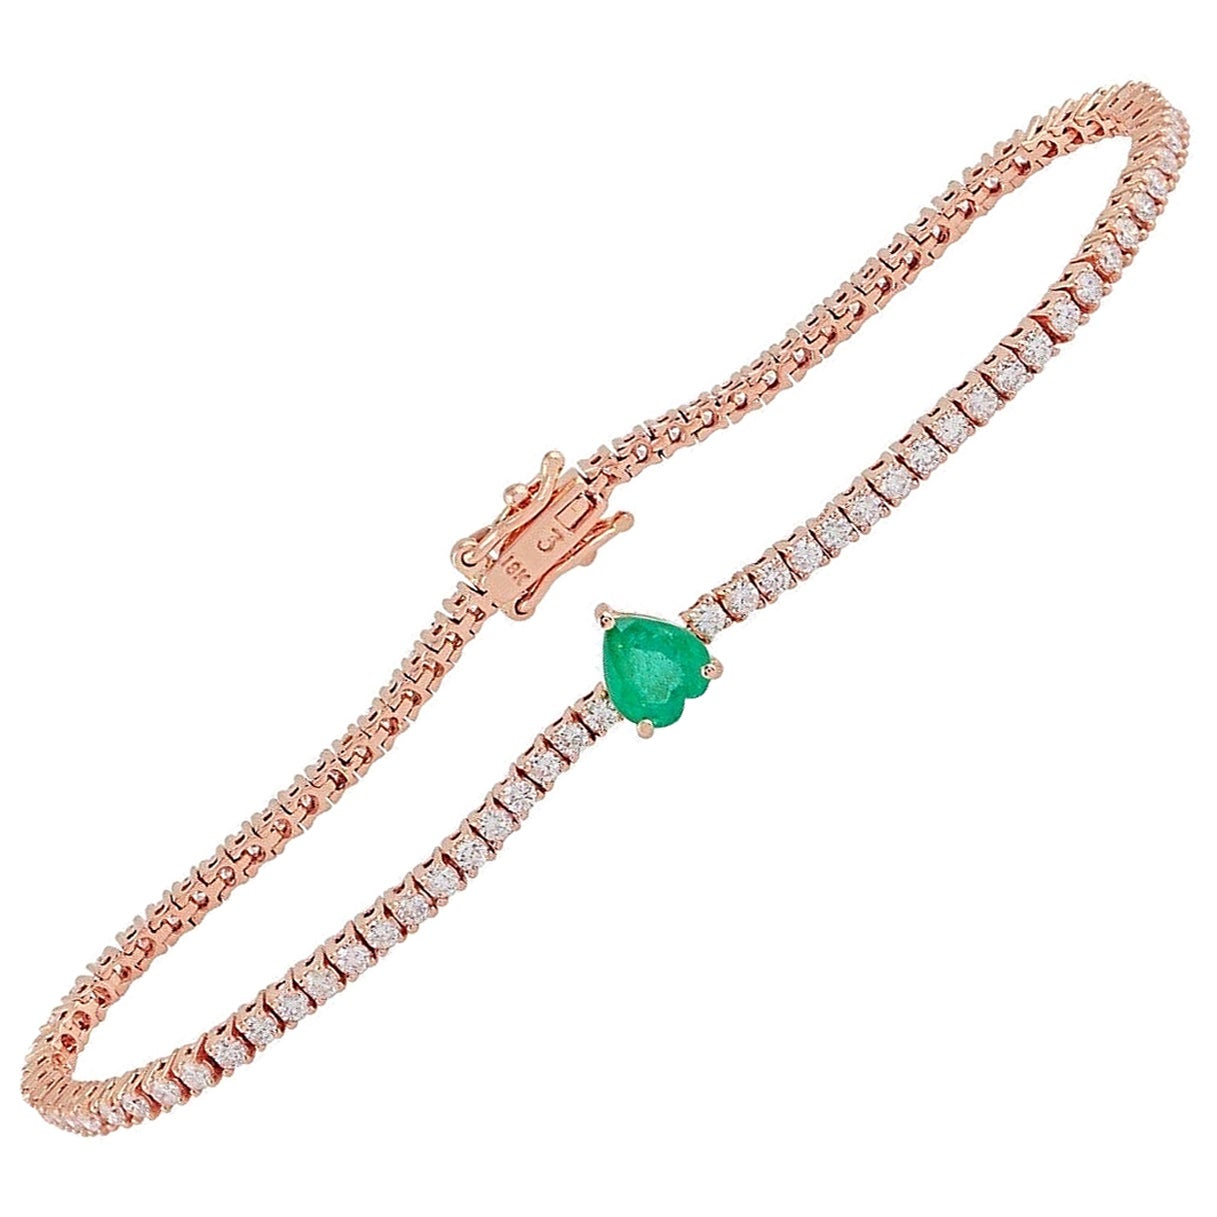 Emerald Diamond 18 Karat Gold Heart Bracelet